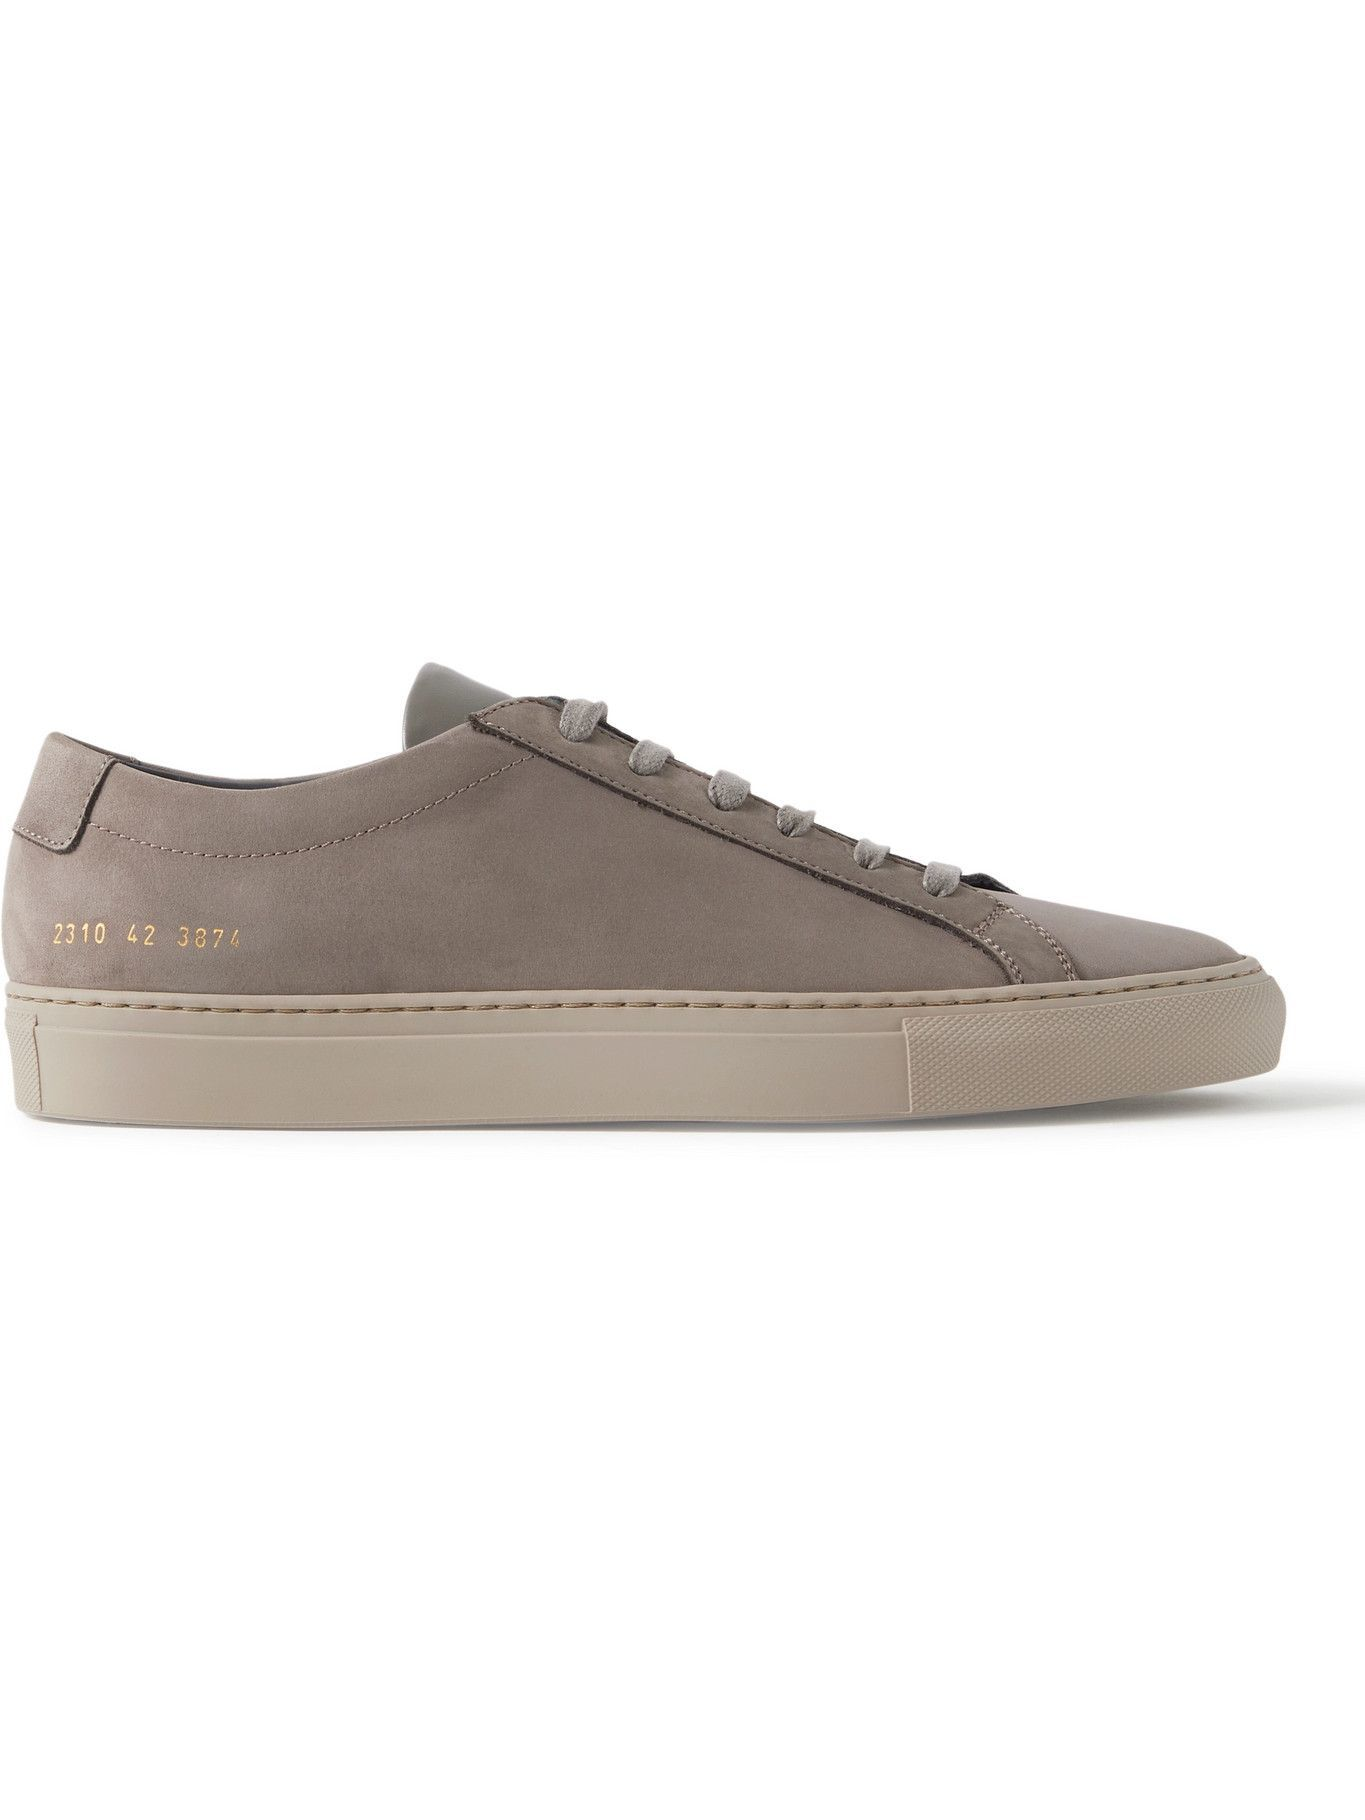 Common Projects - Original Achilles Nubuck and Leather Sneakers - Gray